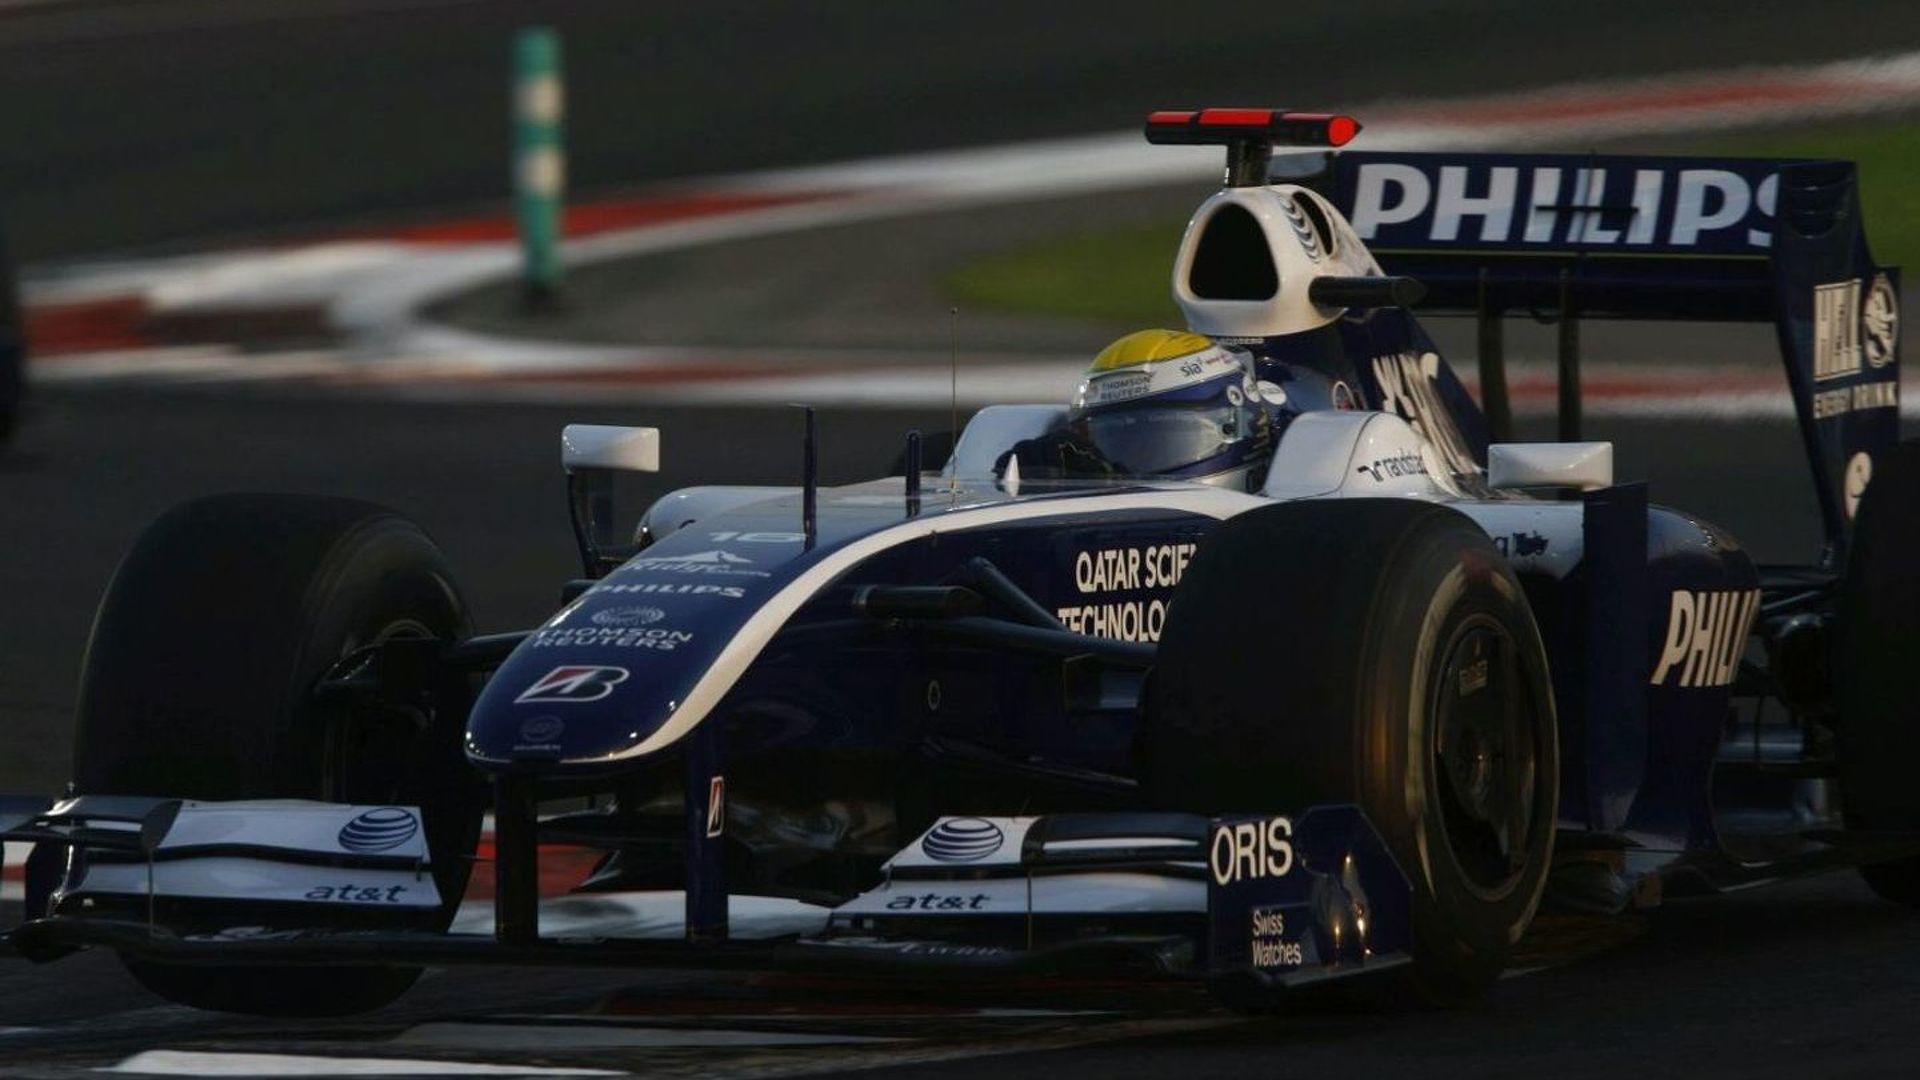 Williams seeks 10m pounds from Icelandic bank